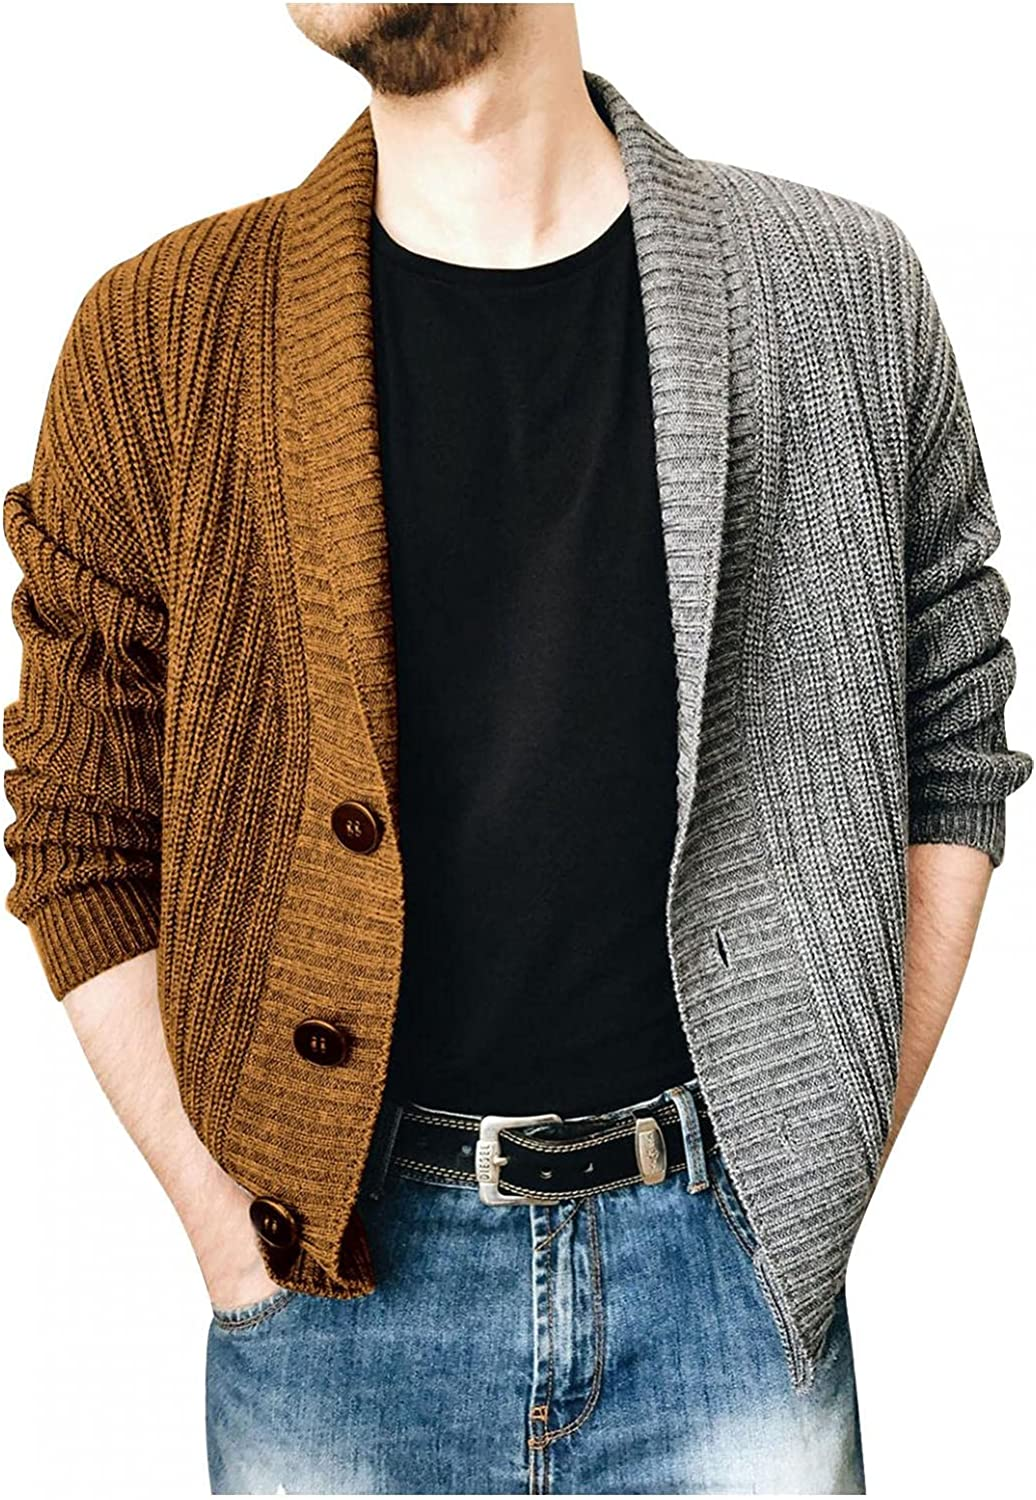 Huangse Men's Shawl Collar Cardigan Sweater Slim Fit Cable Knit Button Down Color Block Sweater Fall Knitted Jacket